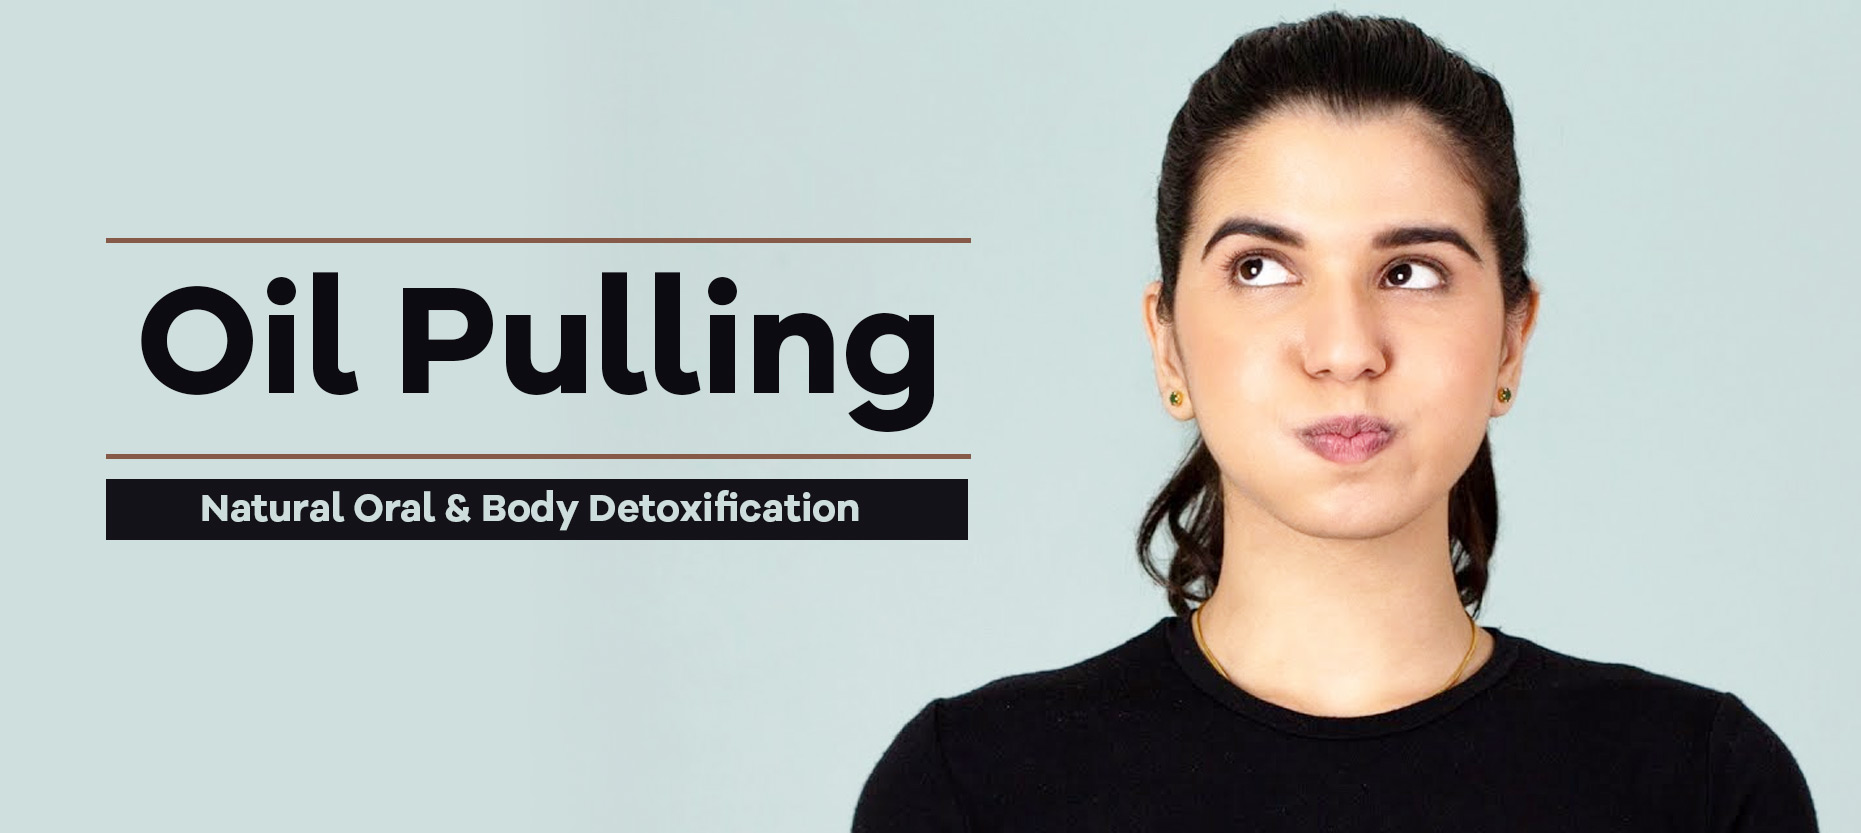 Oil Pulling – For a Natural Oral and Body Detoxification